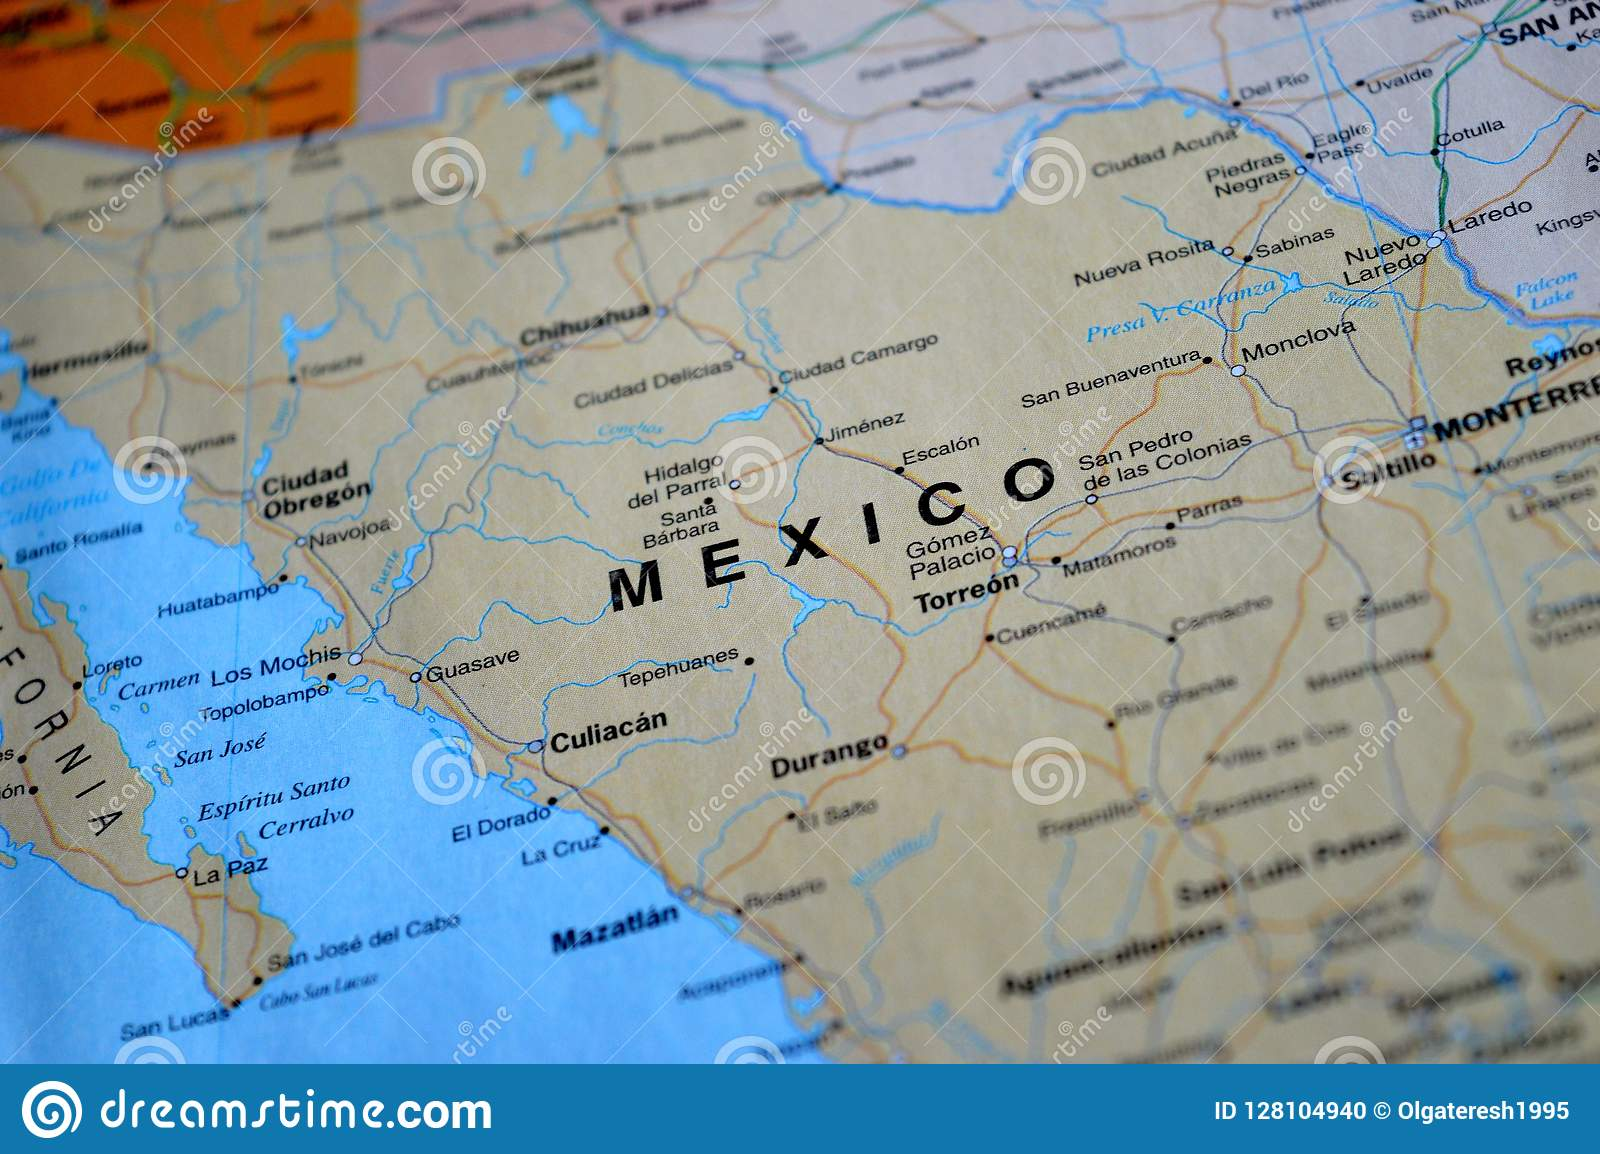 Obregon Mexico Map.A Photo Of Mexico On A Map Stock Photo Image Of Road 128104940